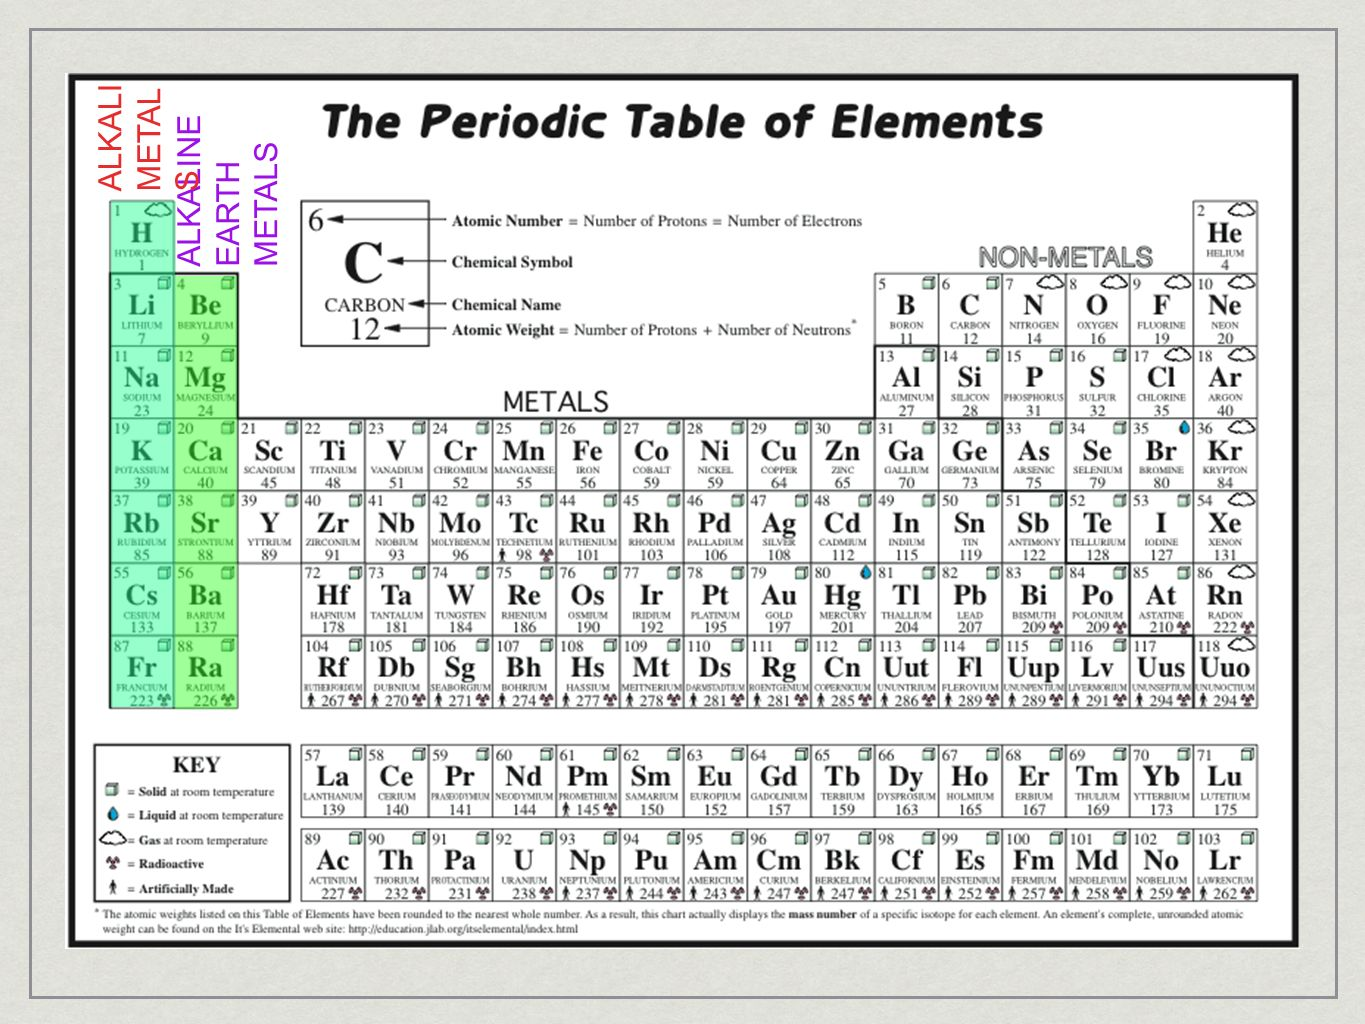 Heaviest metal periodic table gallery periodic table images heaviest metal periodic table choice image periodic table images heaviest metal periodic table images periodic table gamestrikefo Image collections